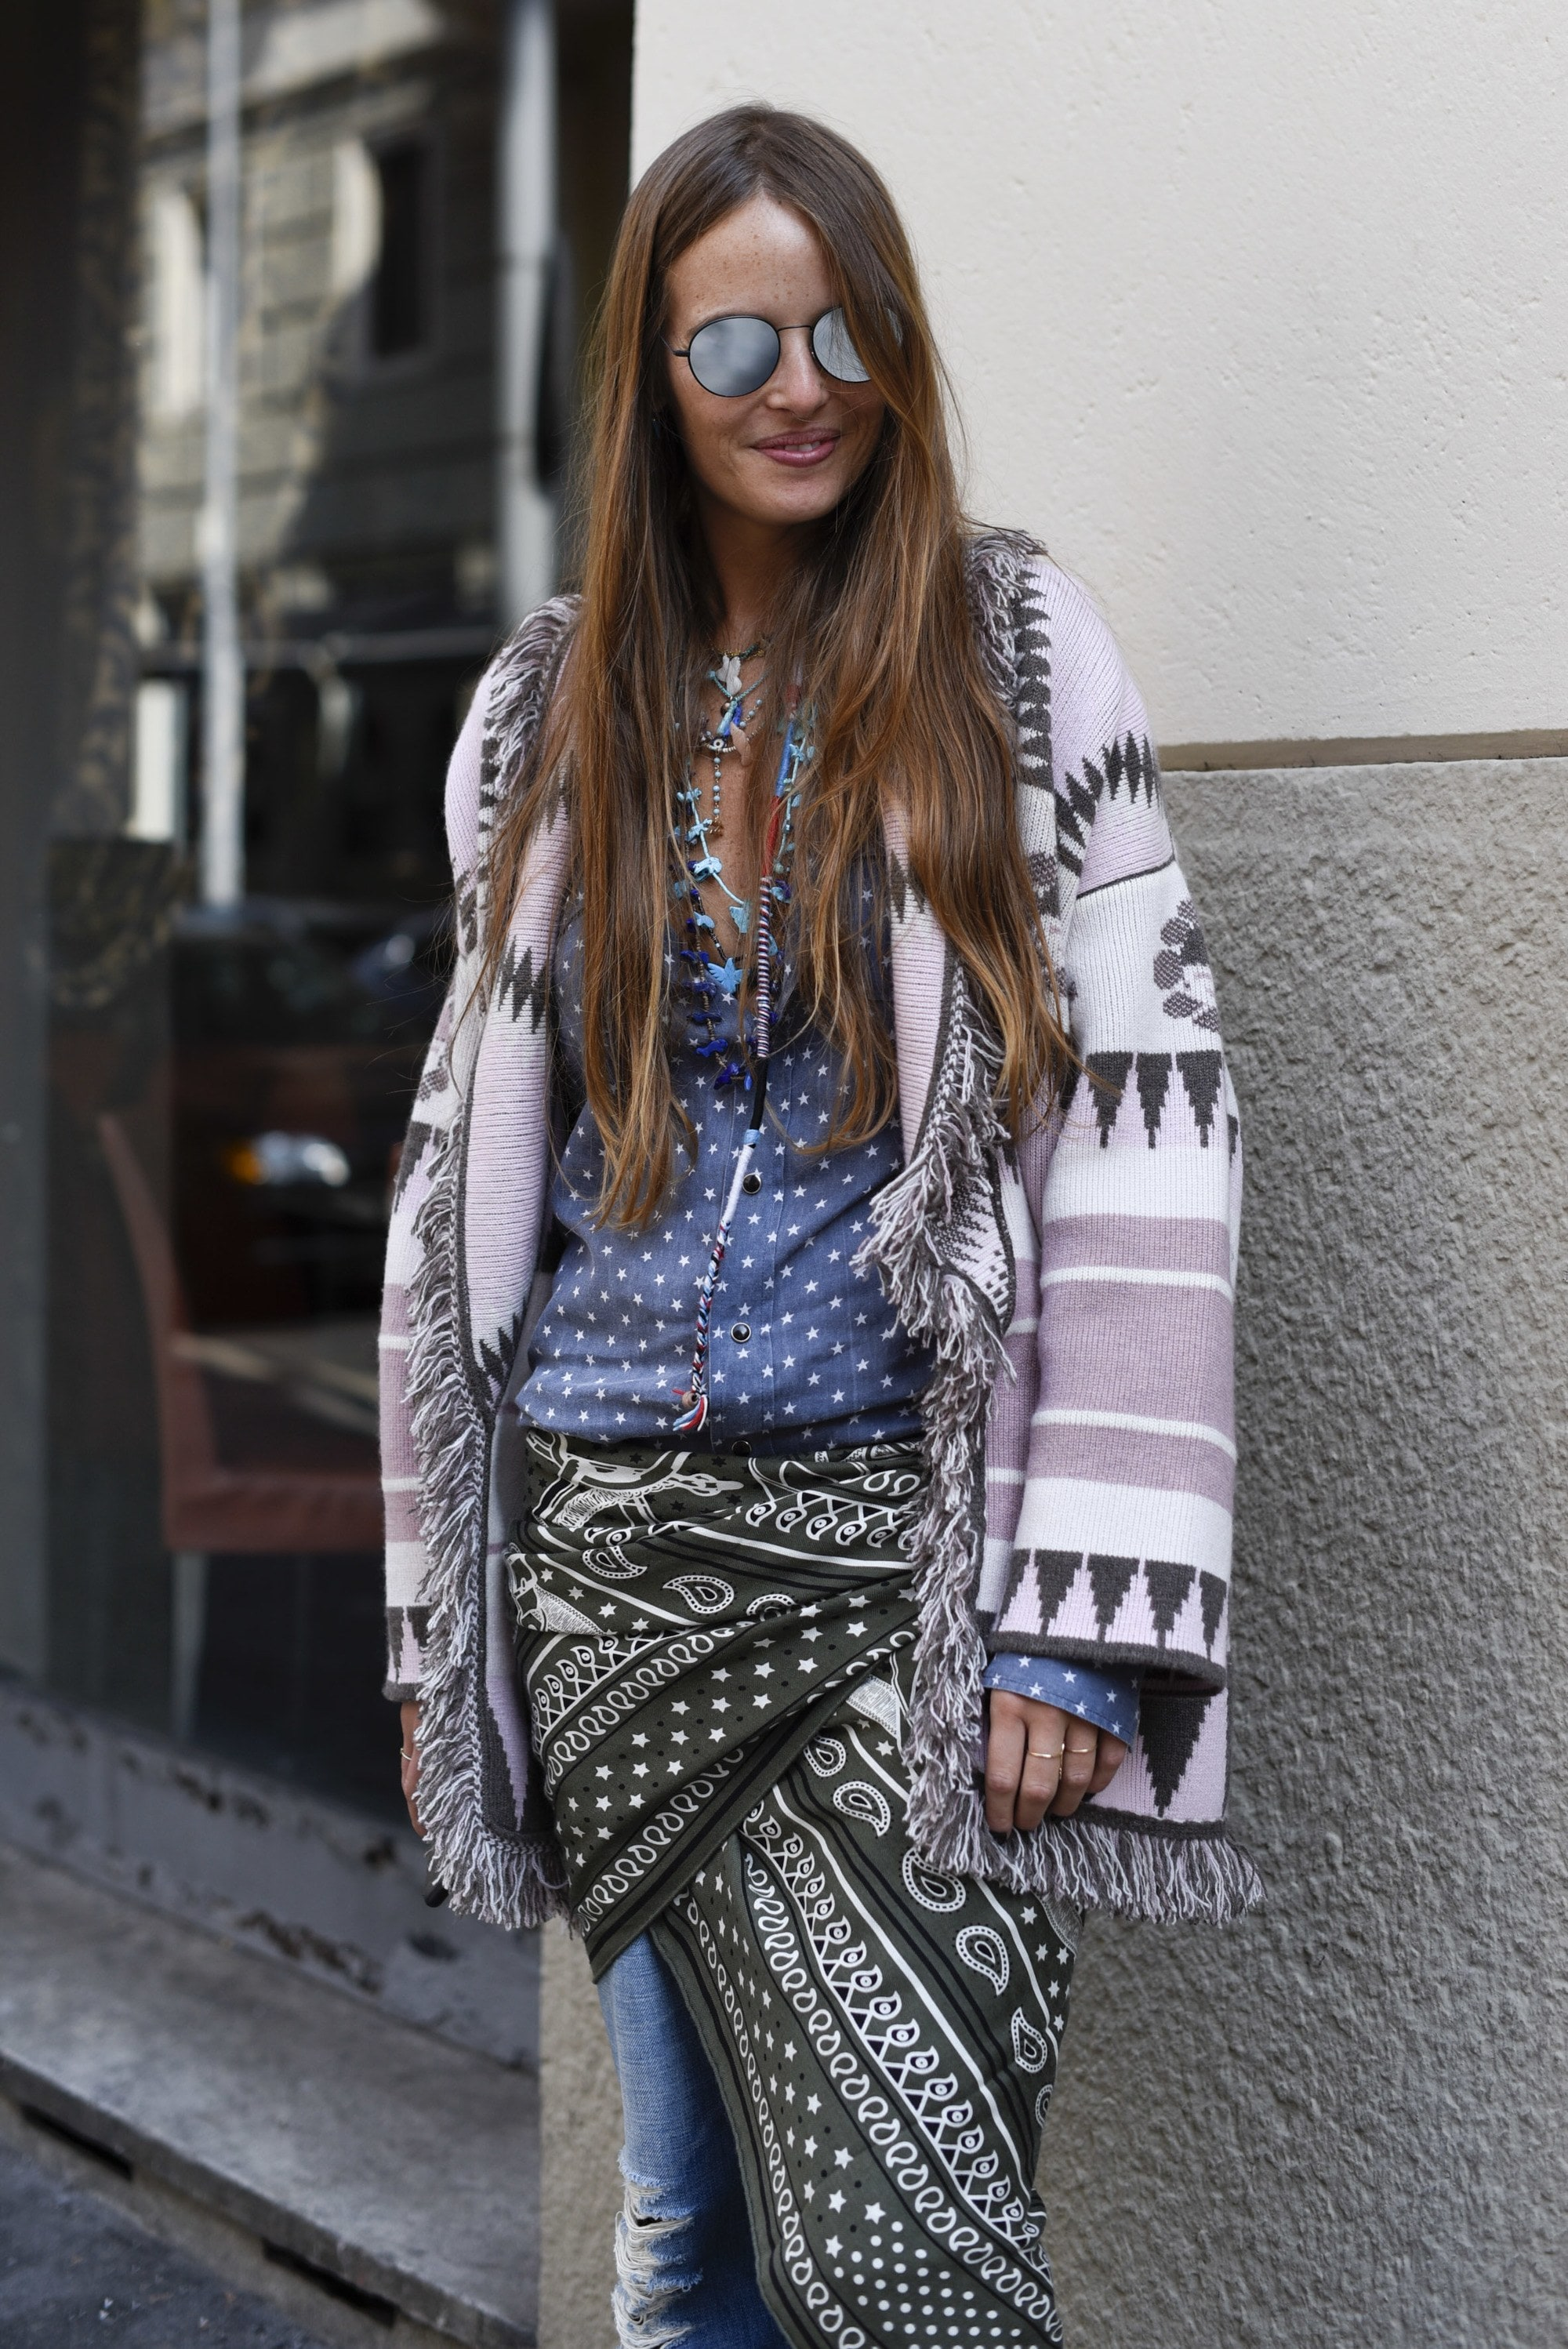 Milan Fashion Week Street Style FW19: Woman with long brunette hair wearing mirrored sunglasses and a bohemian outfit